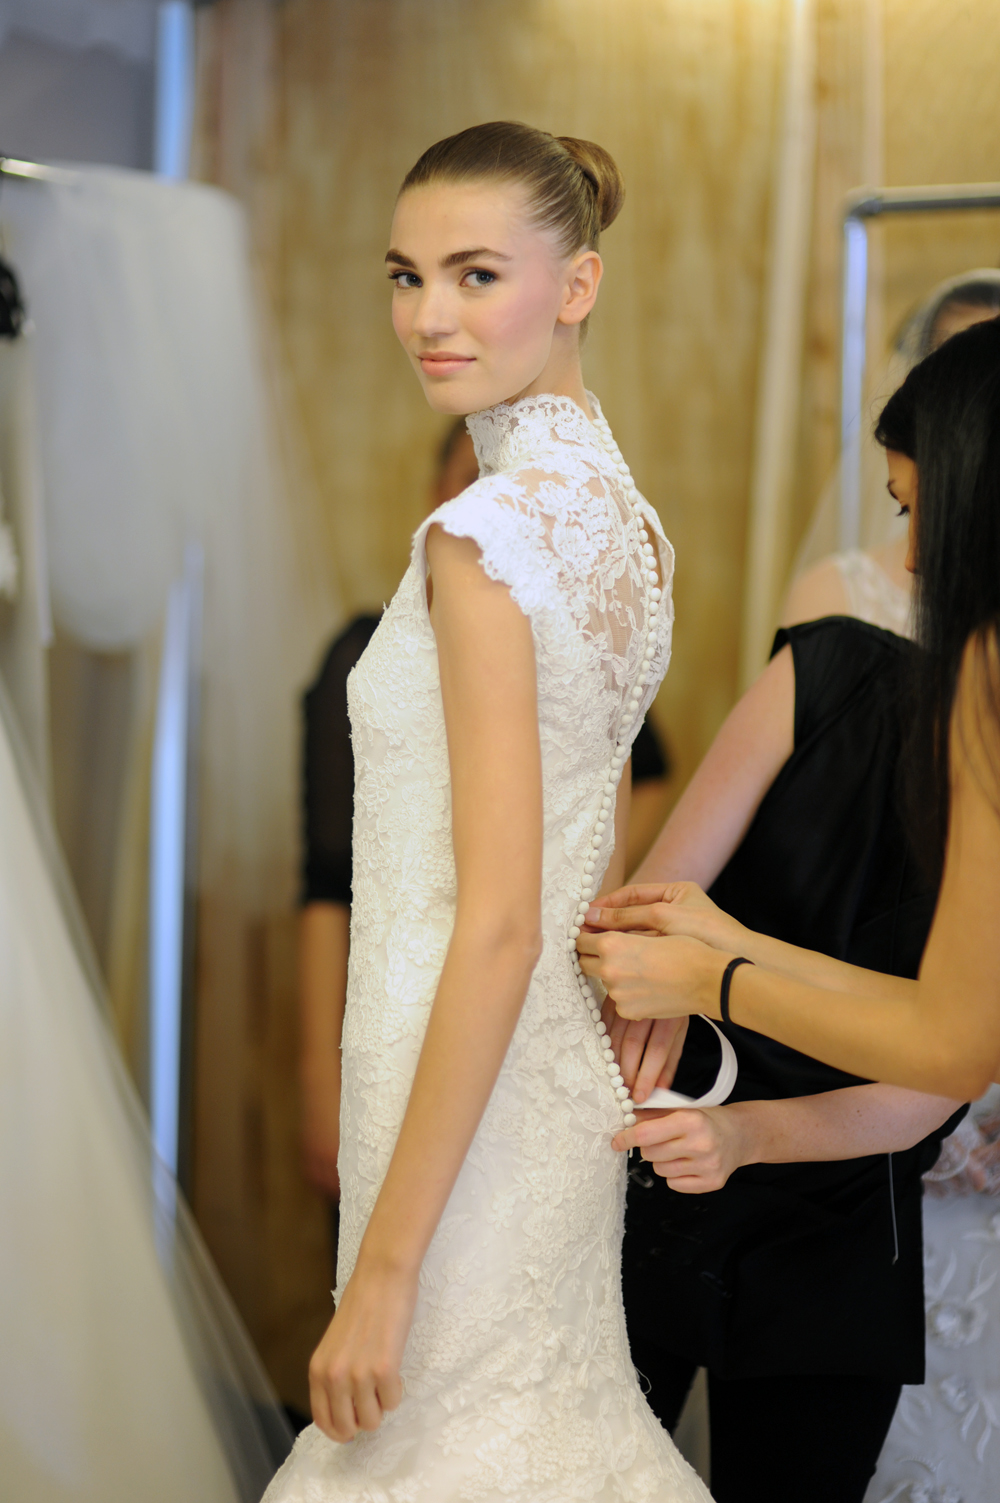 Oscar-de-la-renta-spring-2013-wedding-dress-lace-cap-sleeves.original